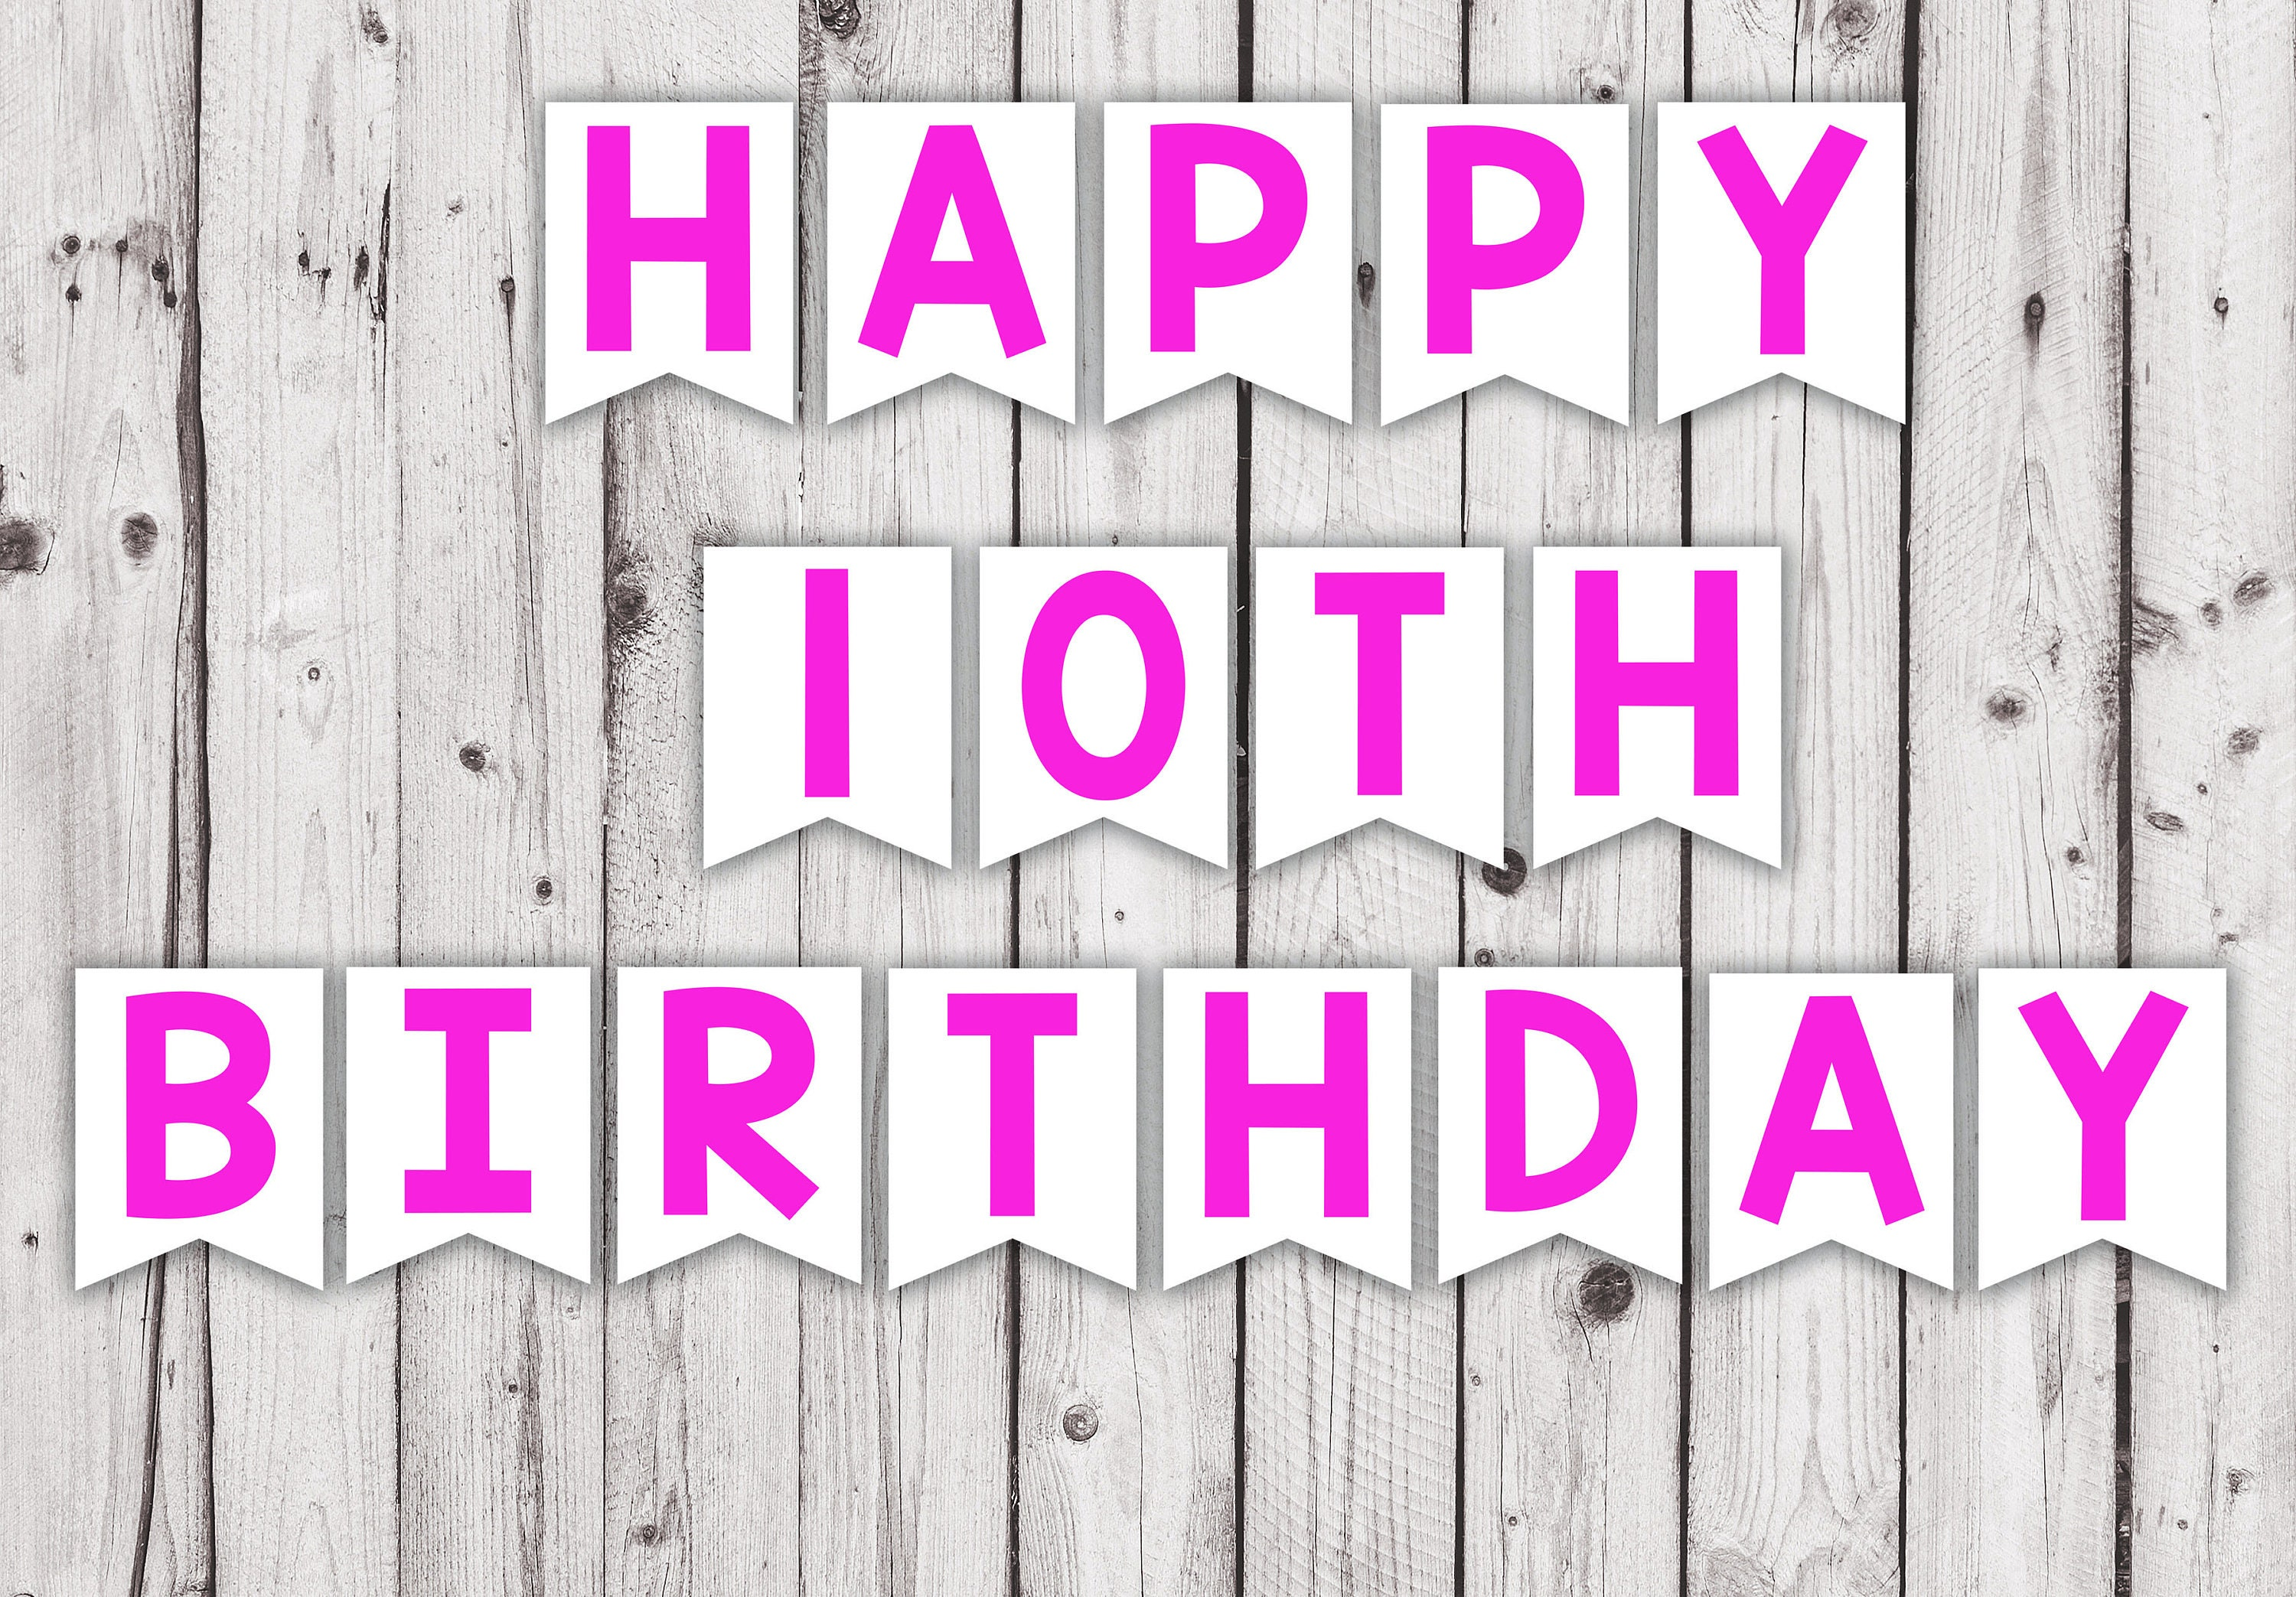 10th birthday printable banner hot pink color party pennant | Etsy